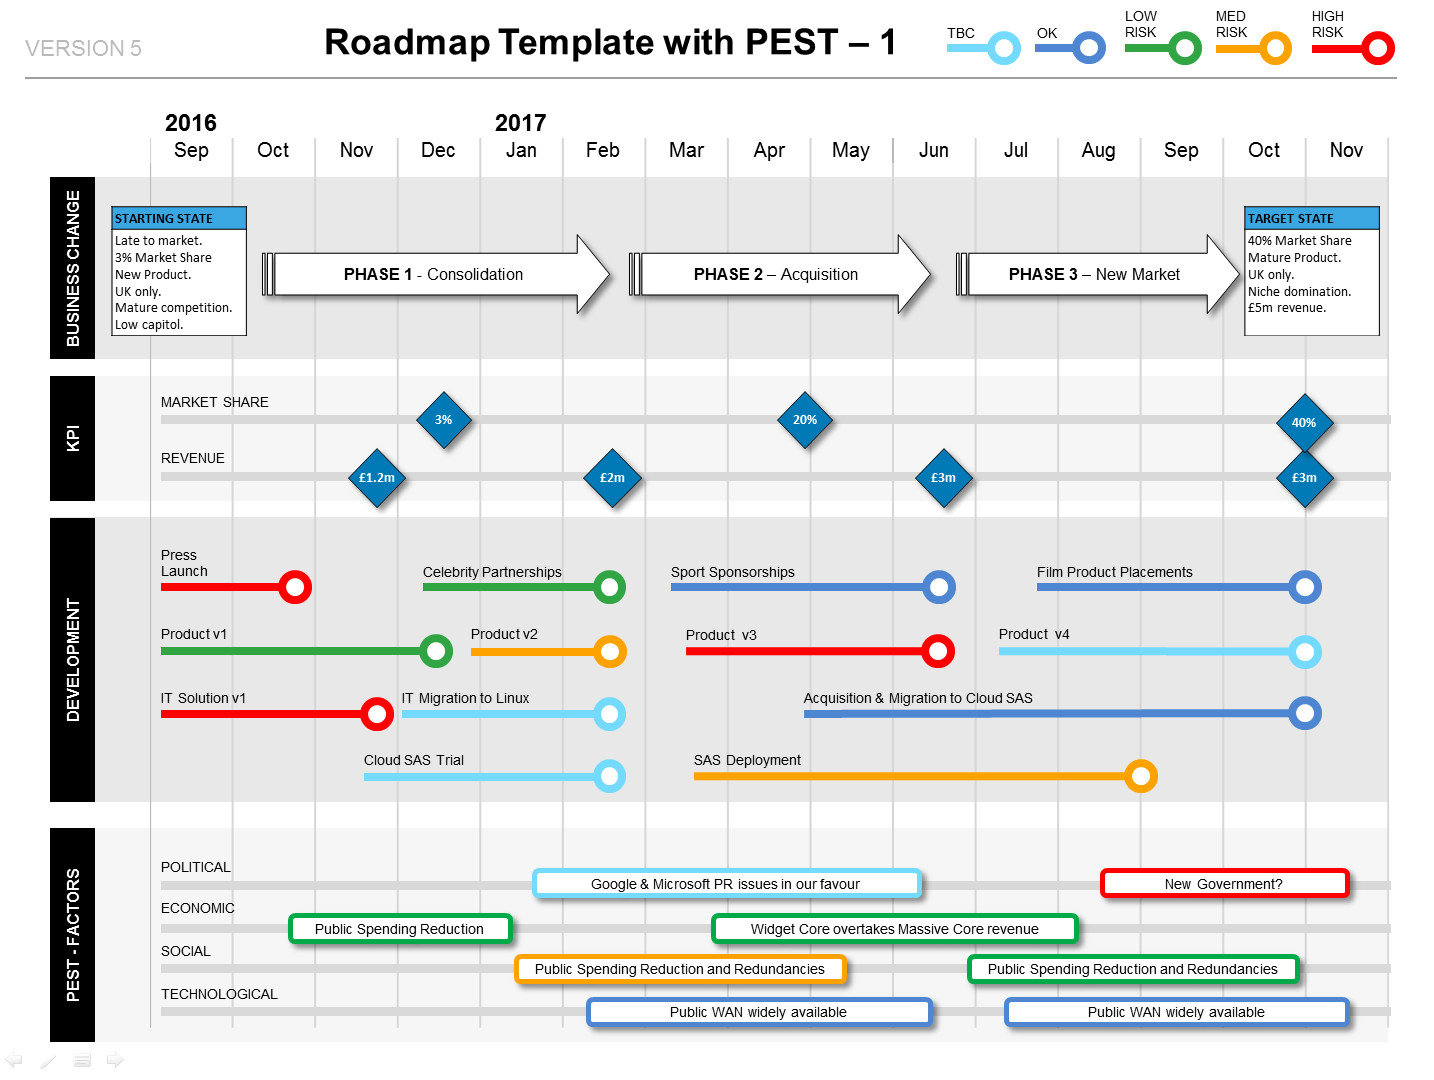 Roadmap Powerpoint Template Free Roadmap with Pest Factors Phases Kpis & Milestones Ppt